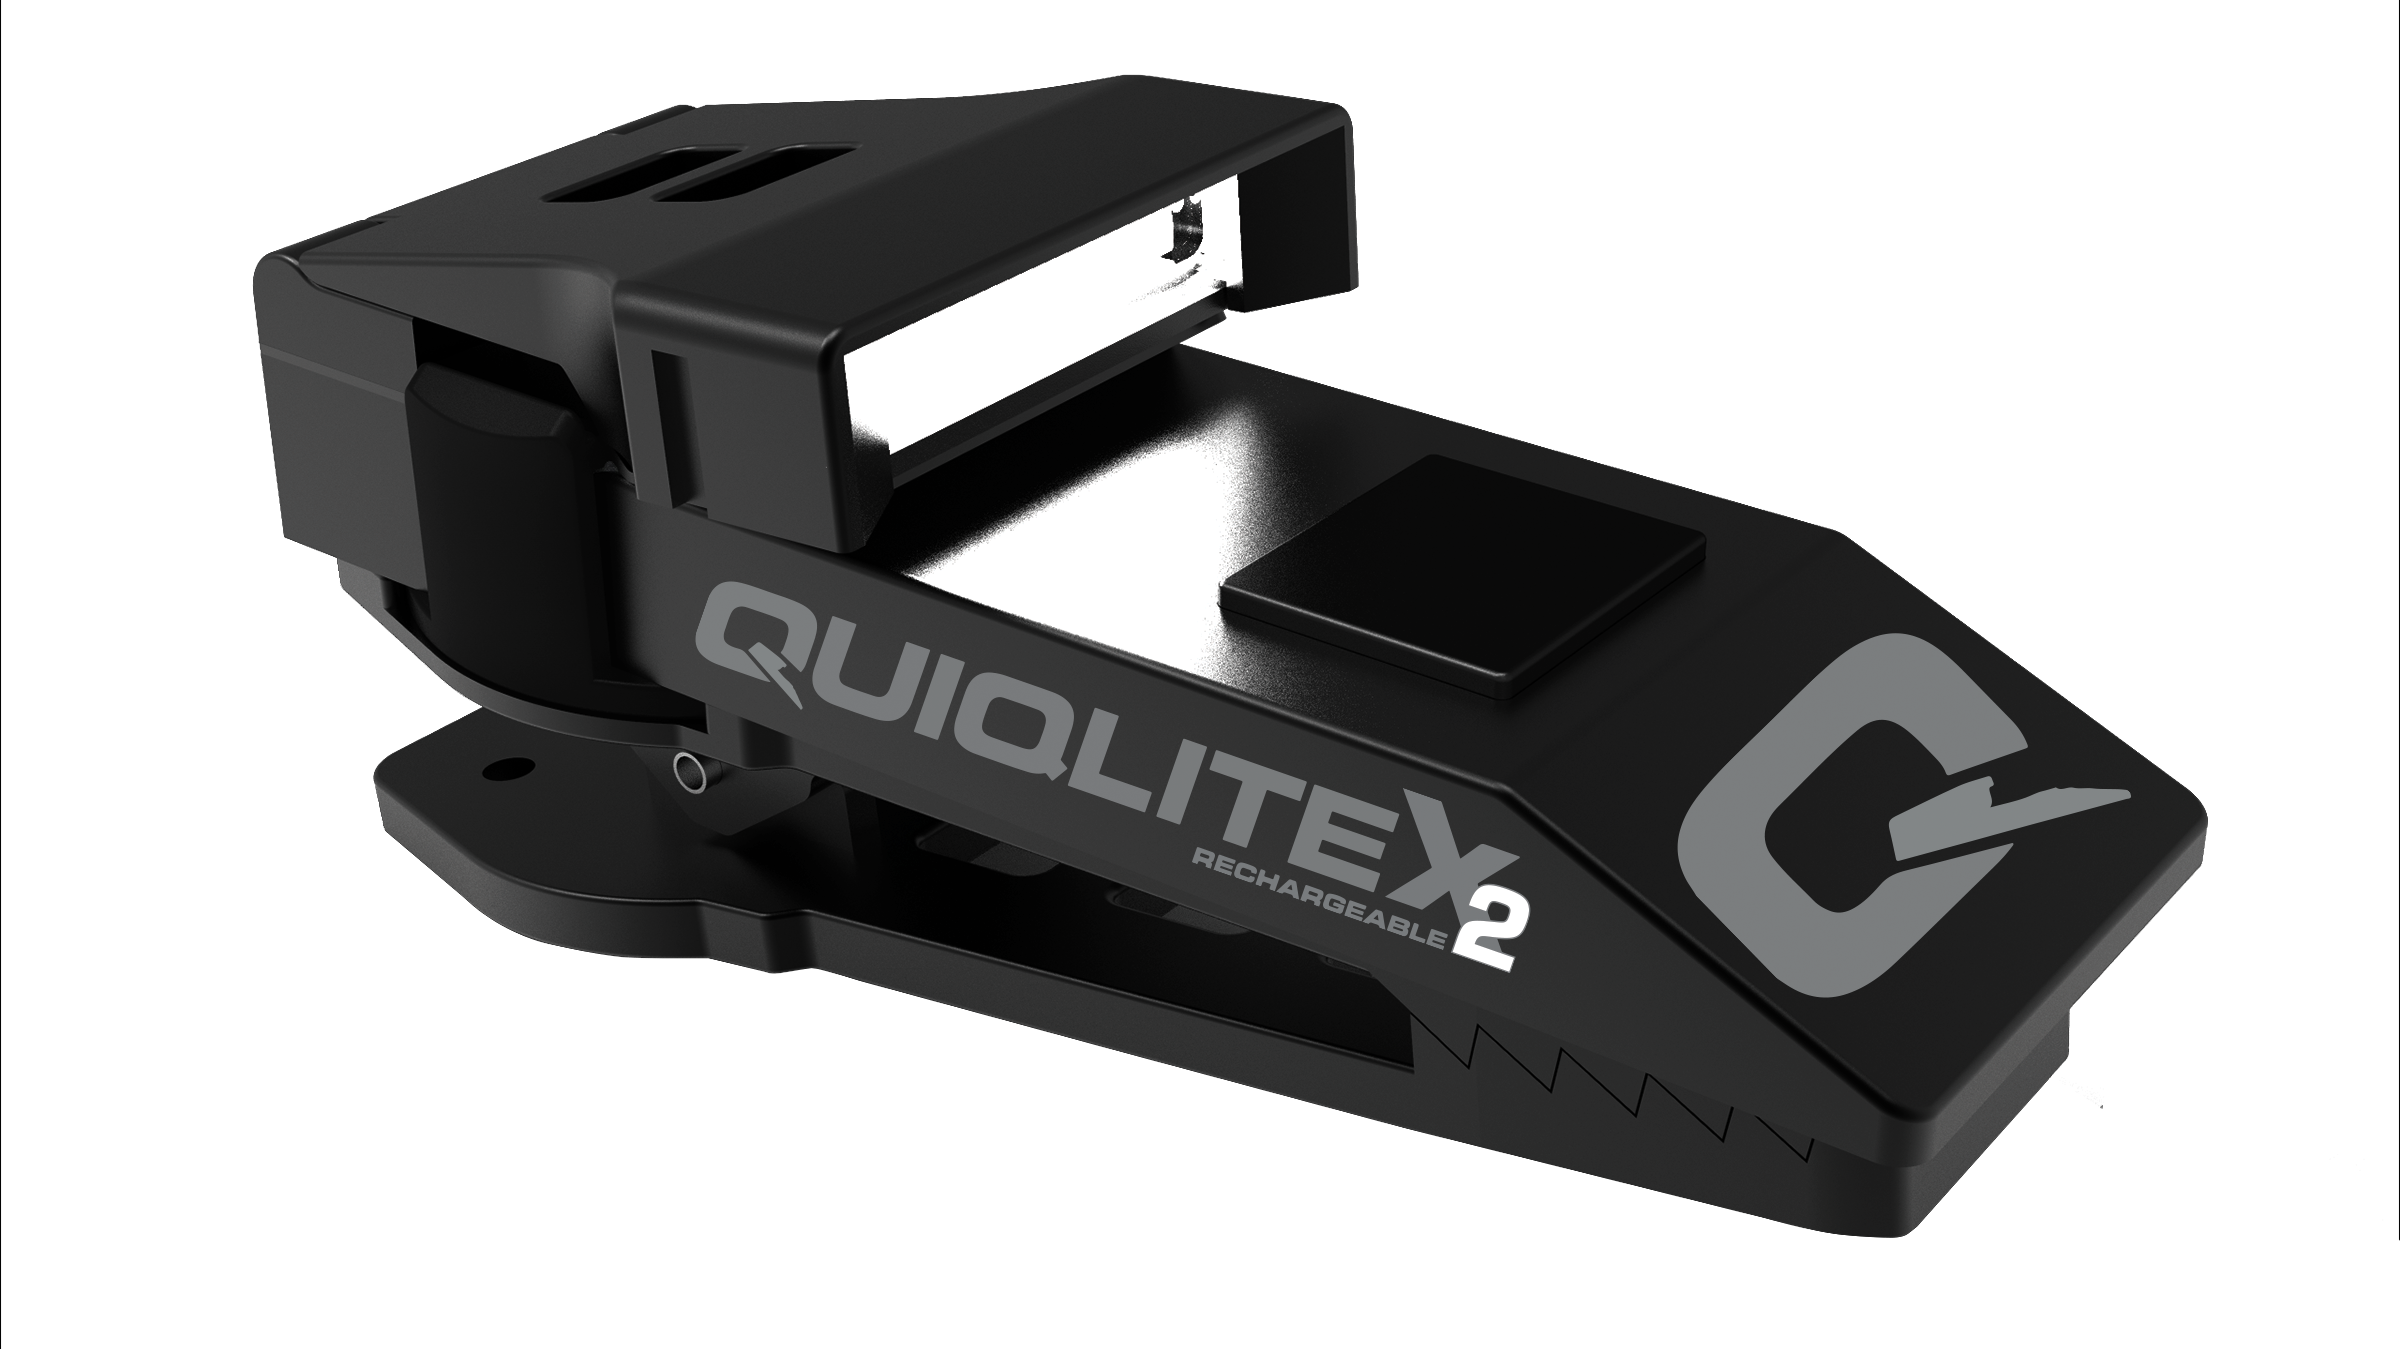 New QuiqLiteX2 Tactical Aluminum, 20 up to 200 lumens USB Rechargeable 00005